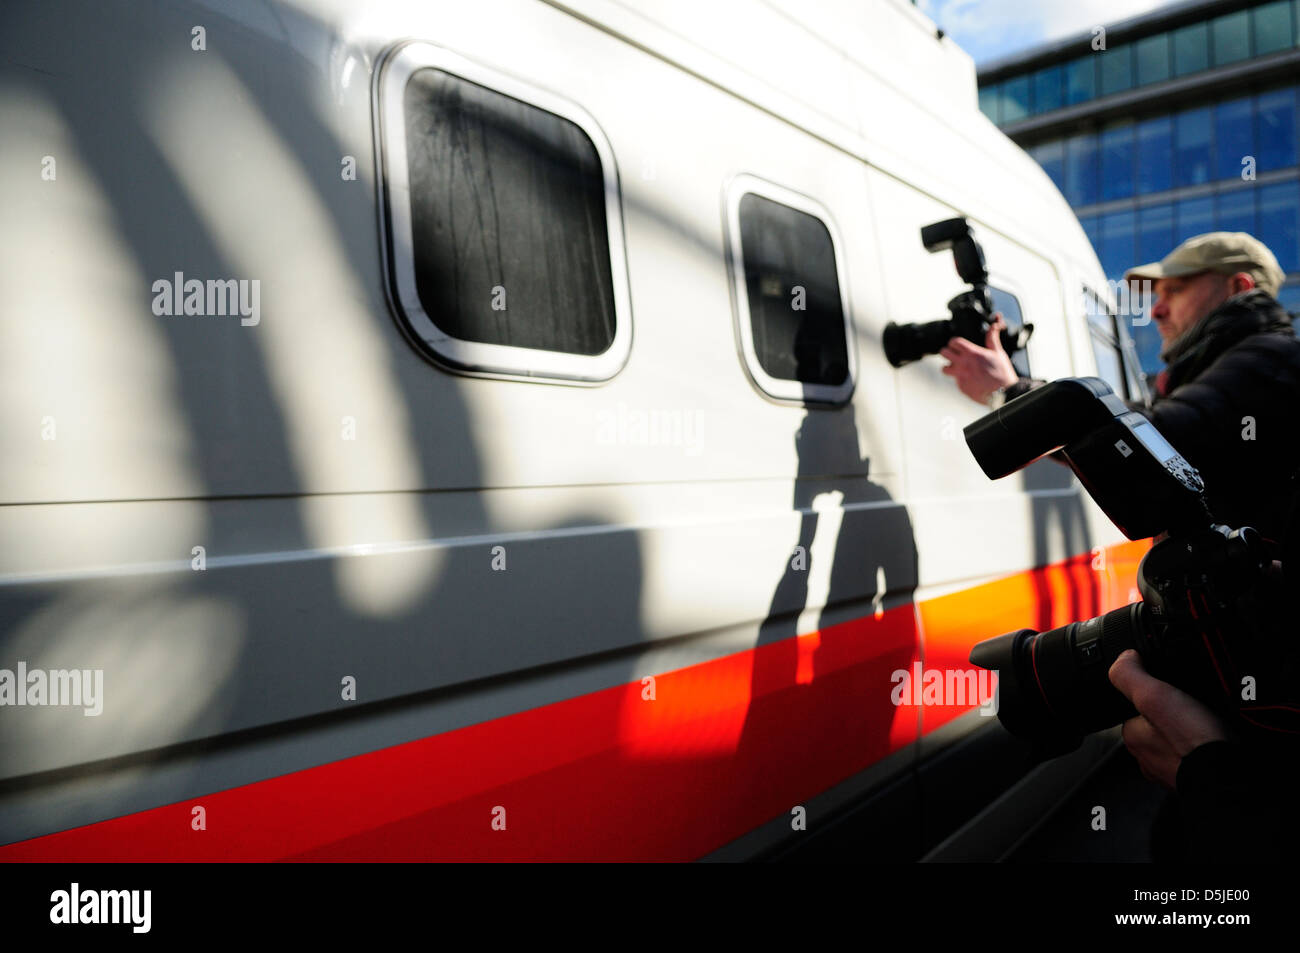 Press Photographer's. Stock Photo